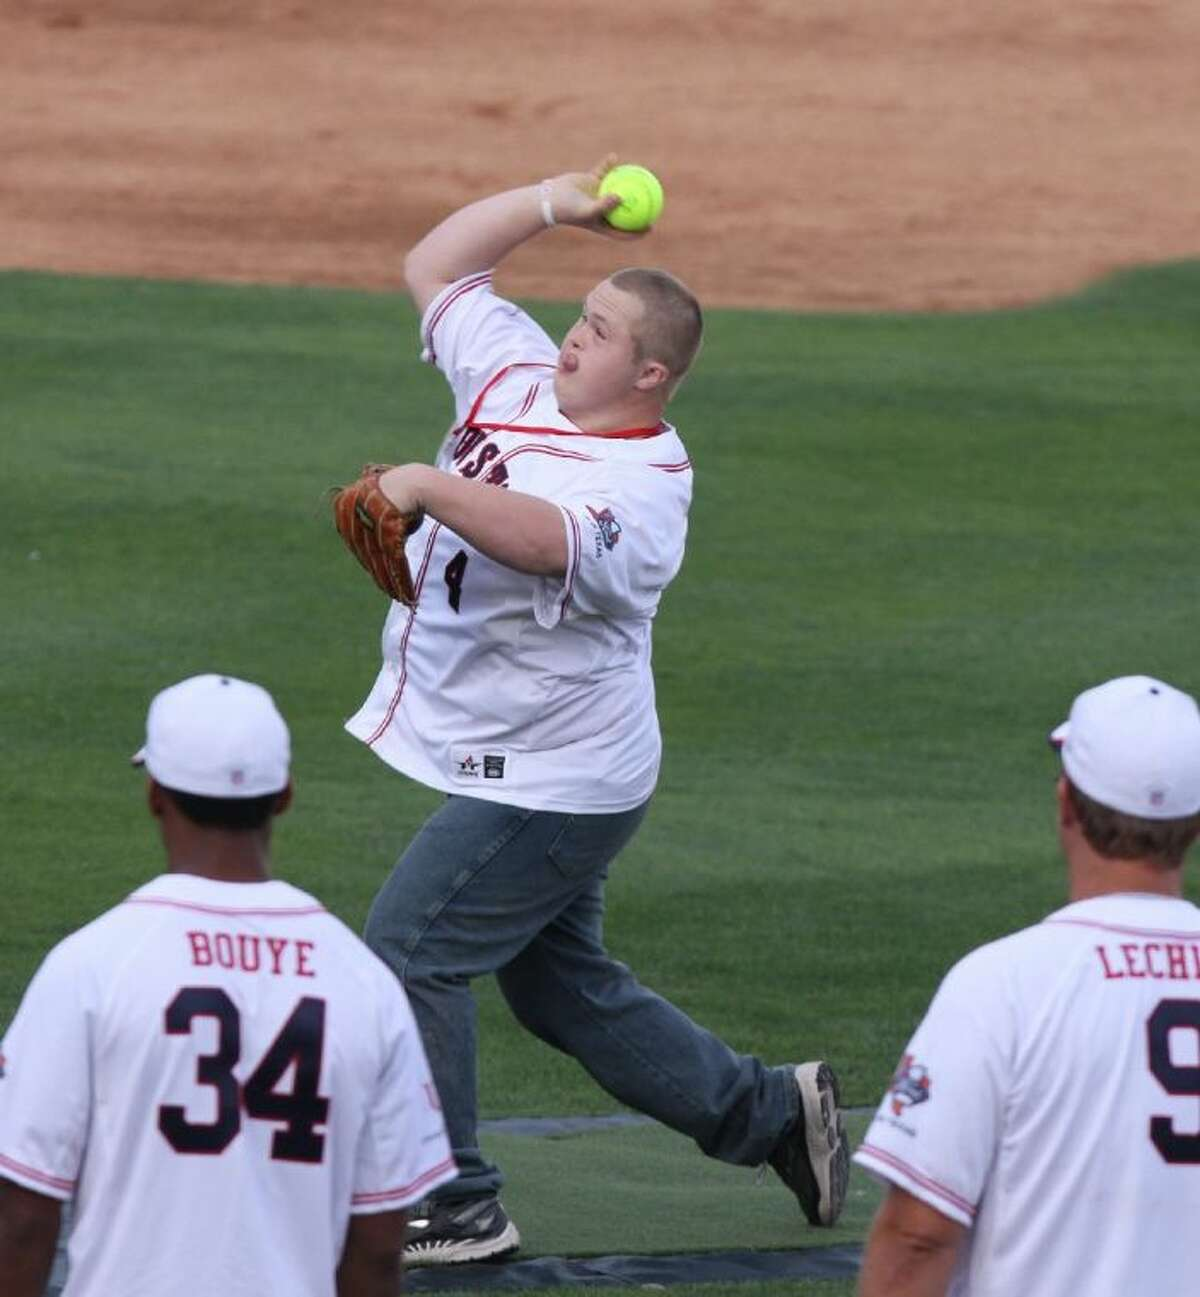 Houston Texans fan and friend of J. J. Watt Trey Brandt throws out the first pitch.